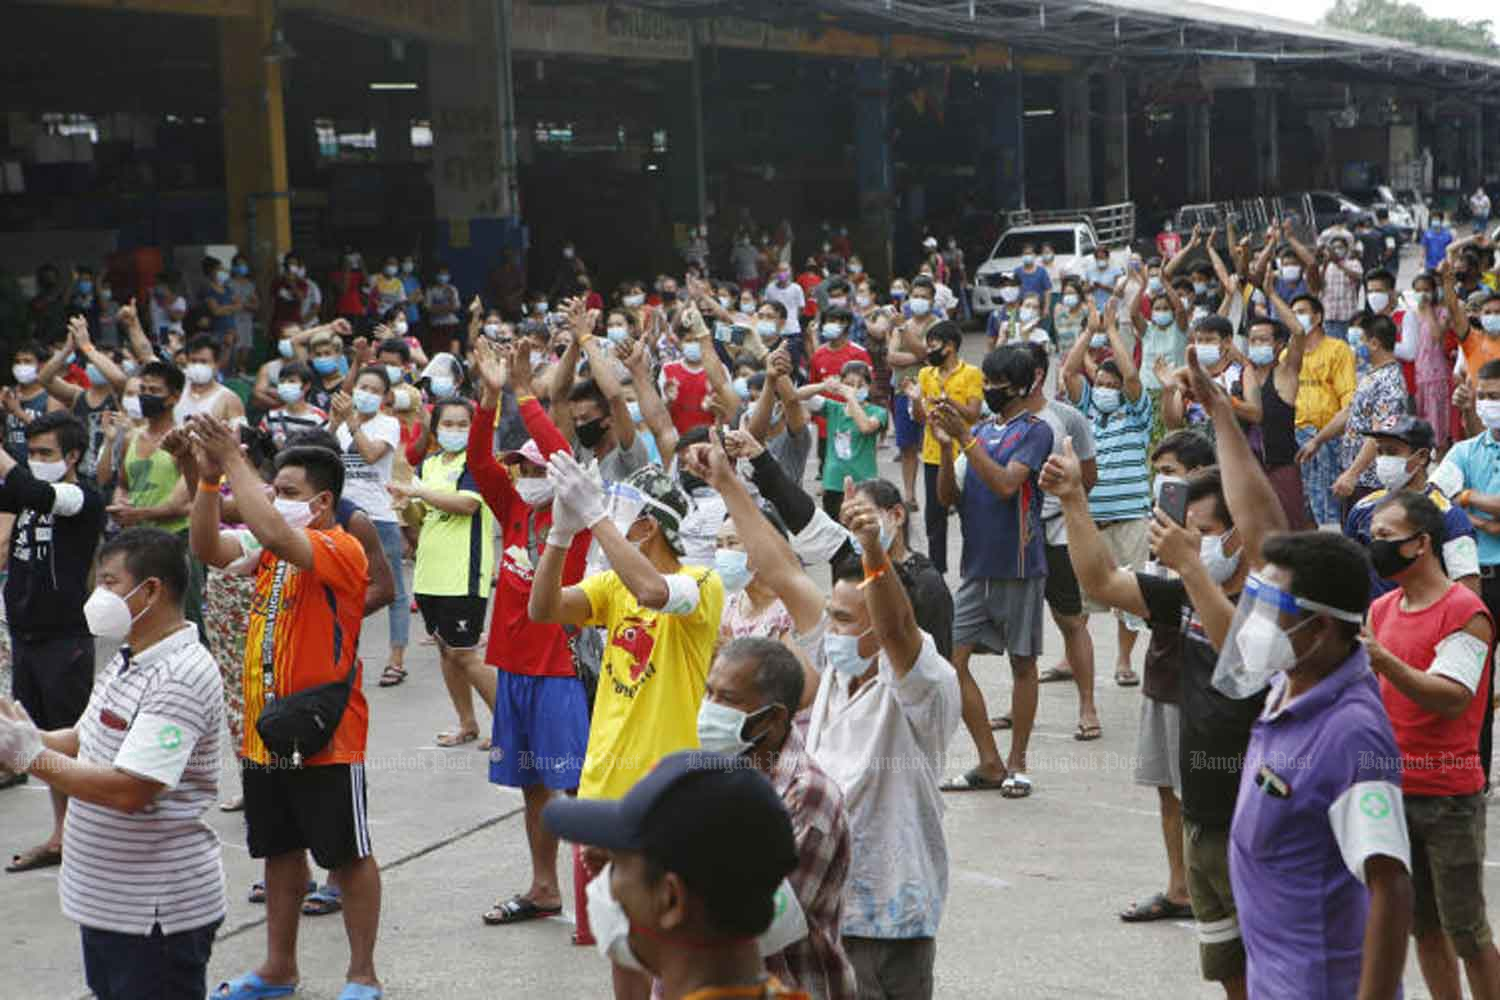 Migrant workers and migrant health volunteers clap their hands to welcome Public Health Minister Anutin Charnvirakul, who inspected measures to handle the Covid-19 outbreak at the Central Shrimp Market in Samut Sakhon province on Sunday. The market and Sri Muang dormitory are designated as off-limits areas for disease control. (Photo: Apichit Jinakul)